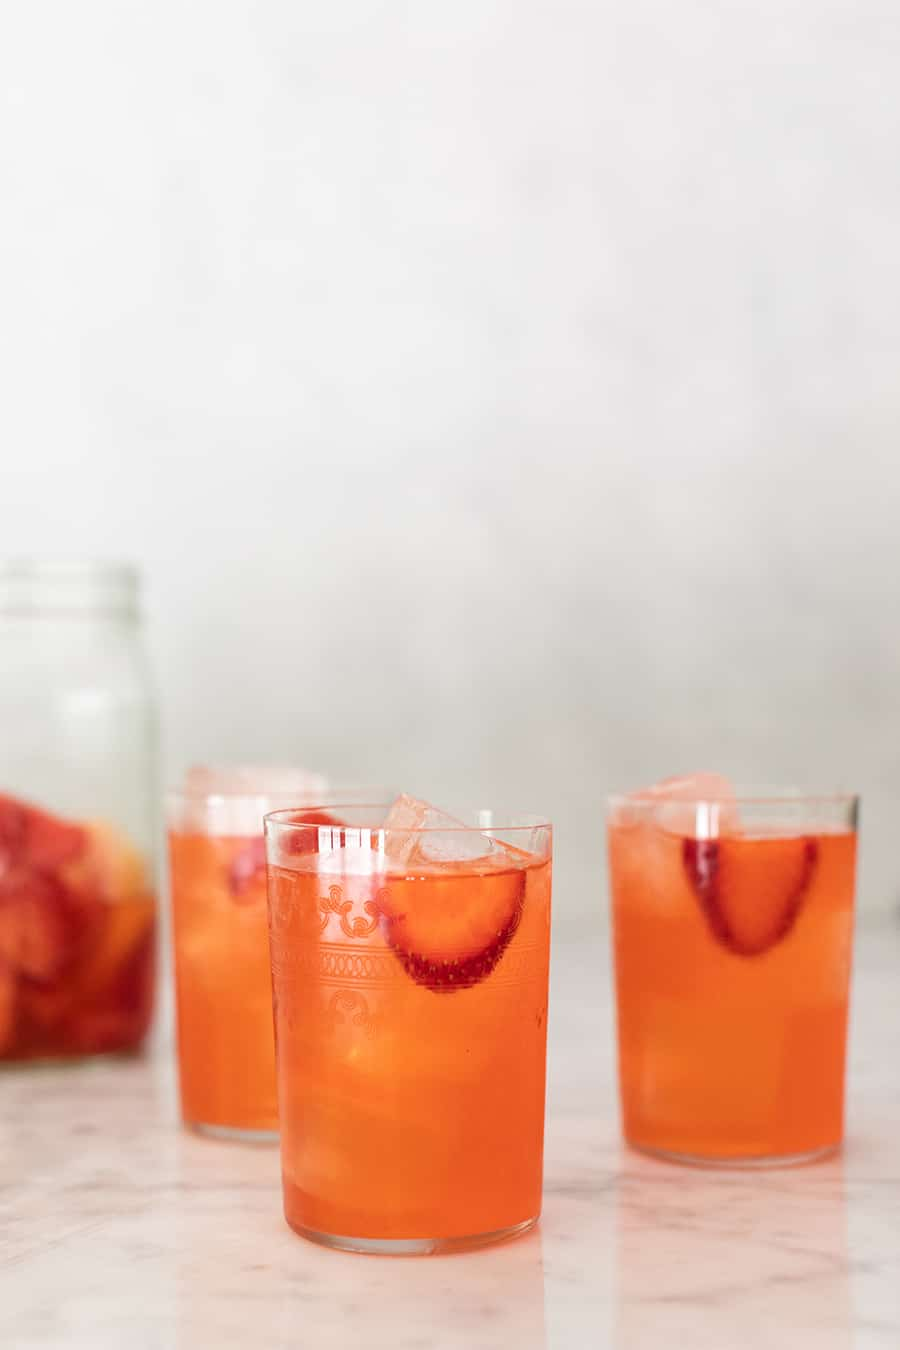 Strawberry lemonade in glasses.